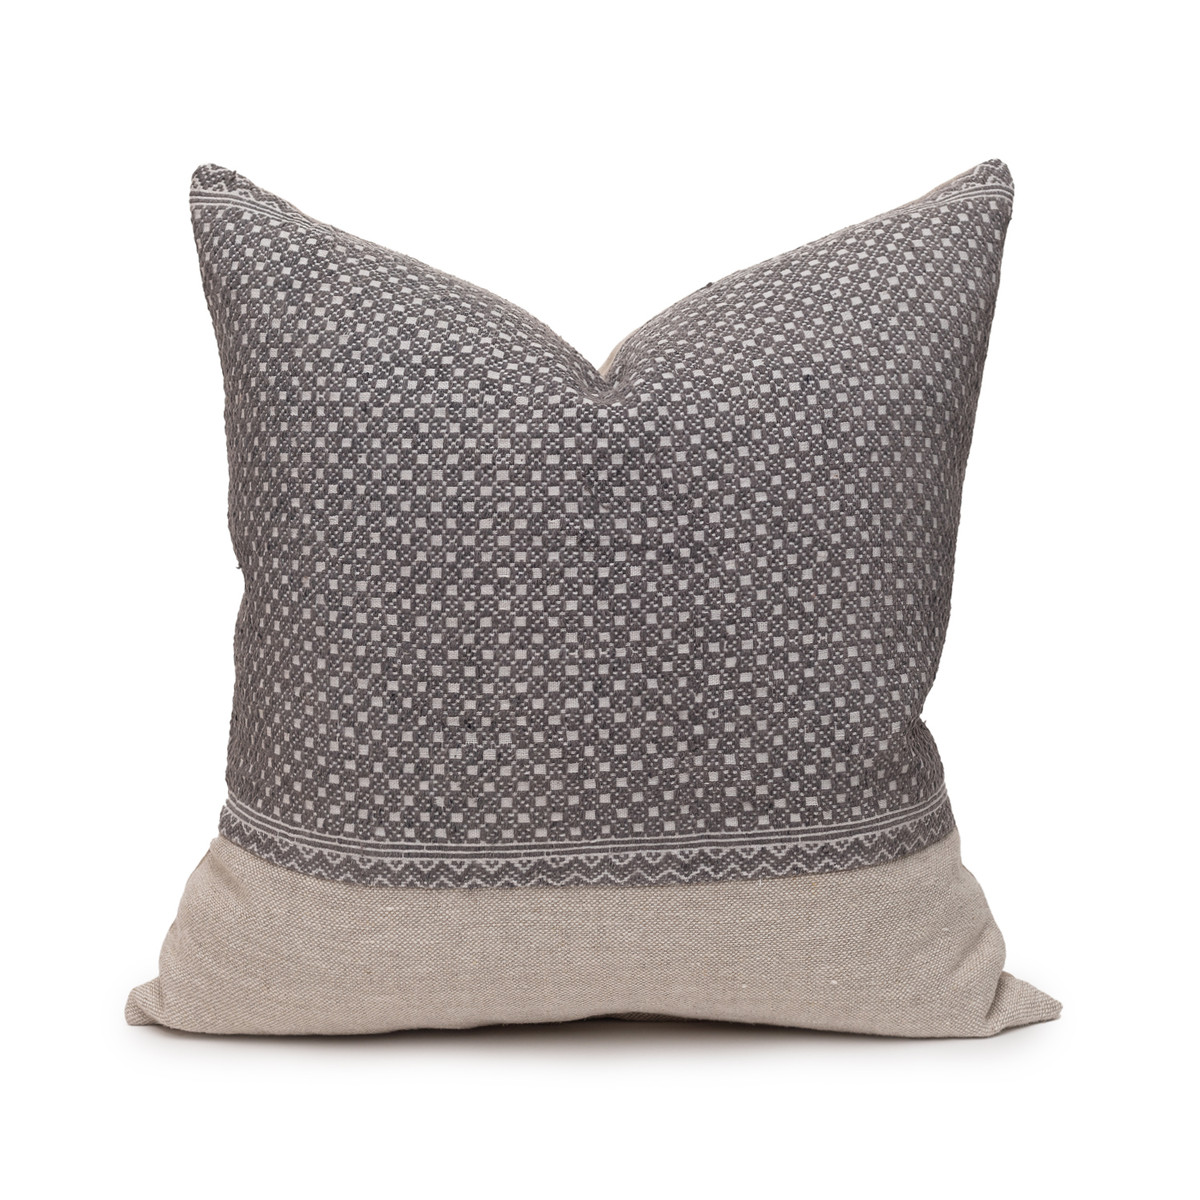 Evan Gray Luxe Vintage Pillow - 20 - Front